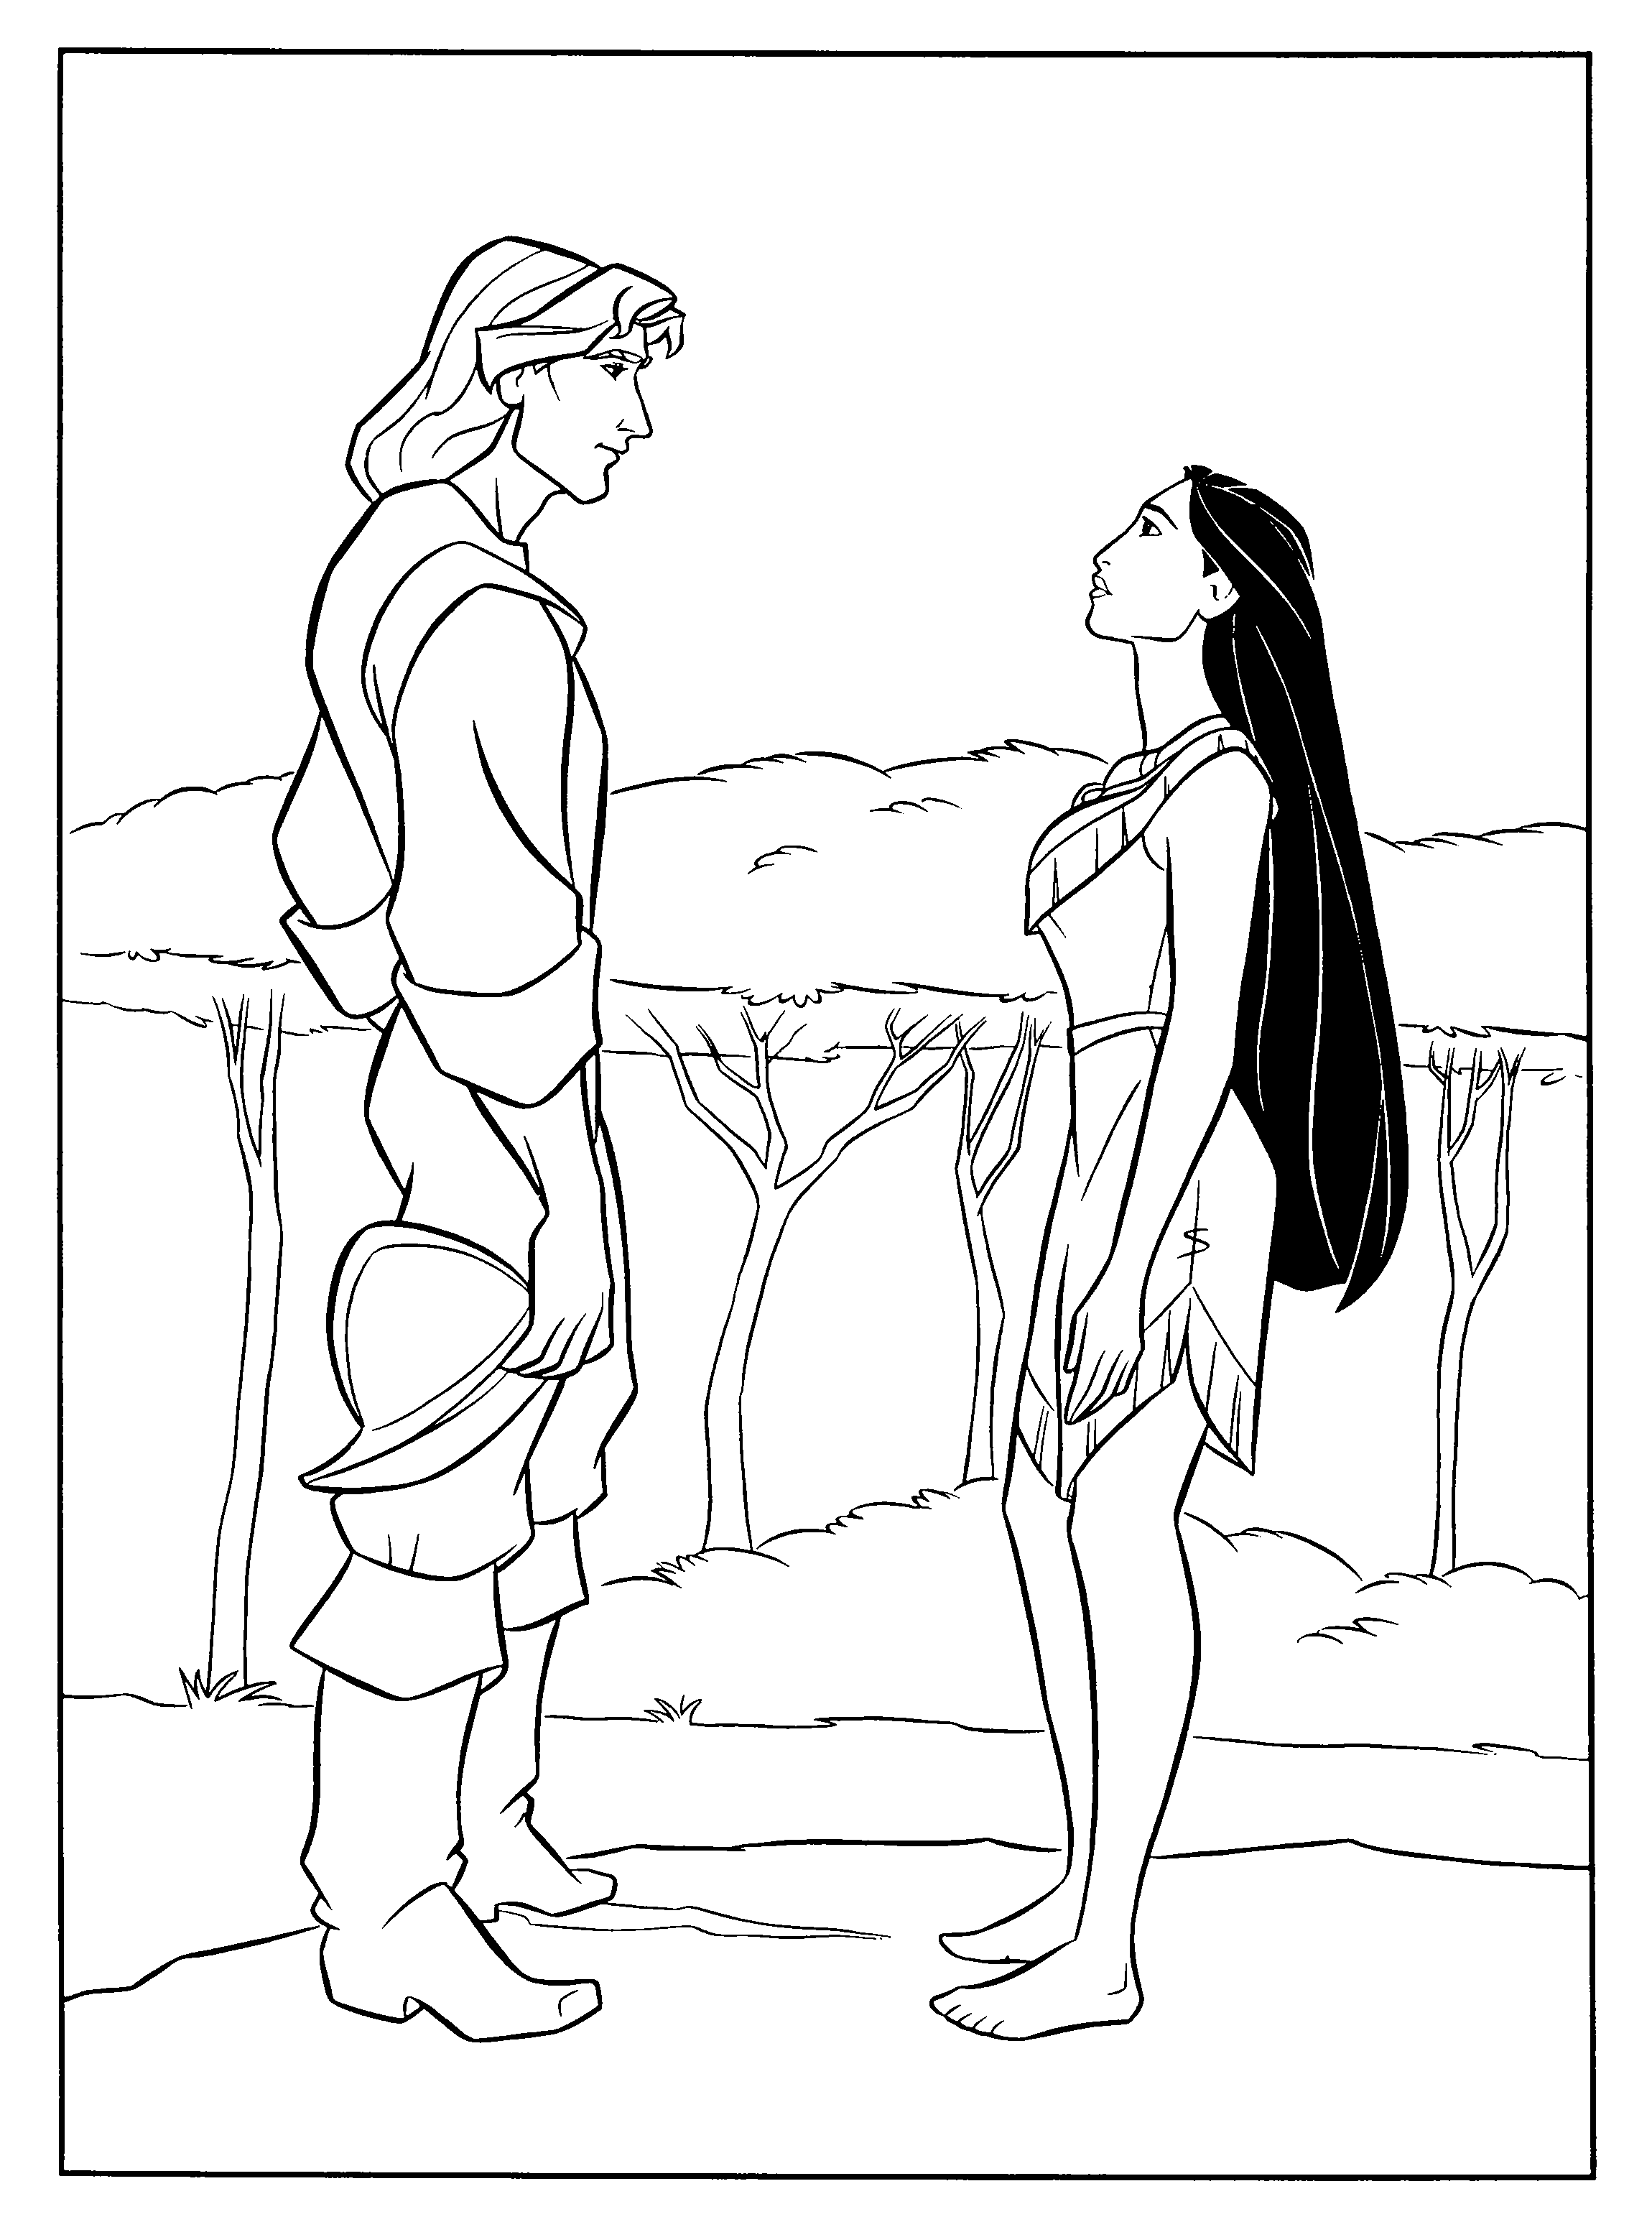 pocahontas coloring pages - Google-søgning | Coloring Pages ...